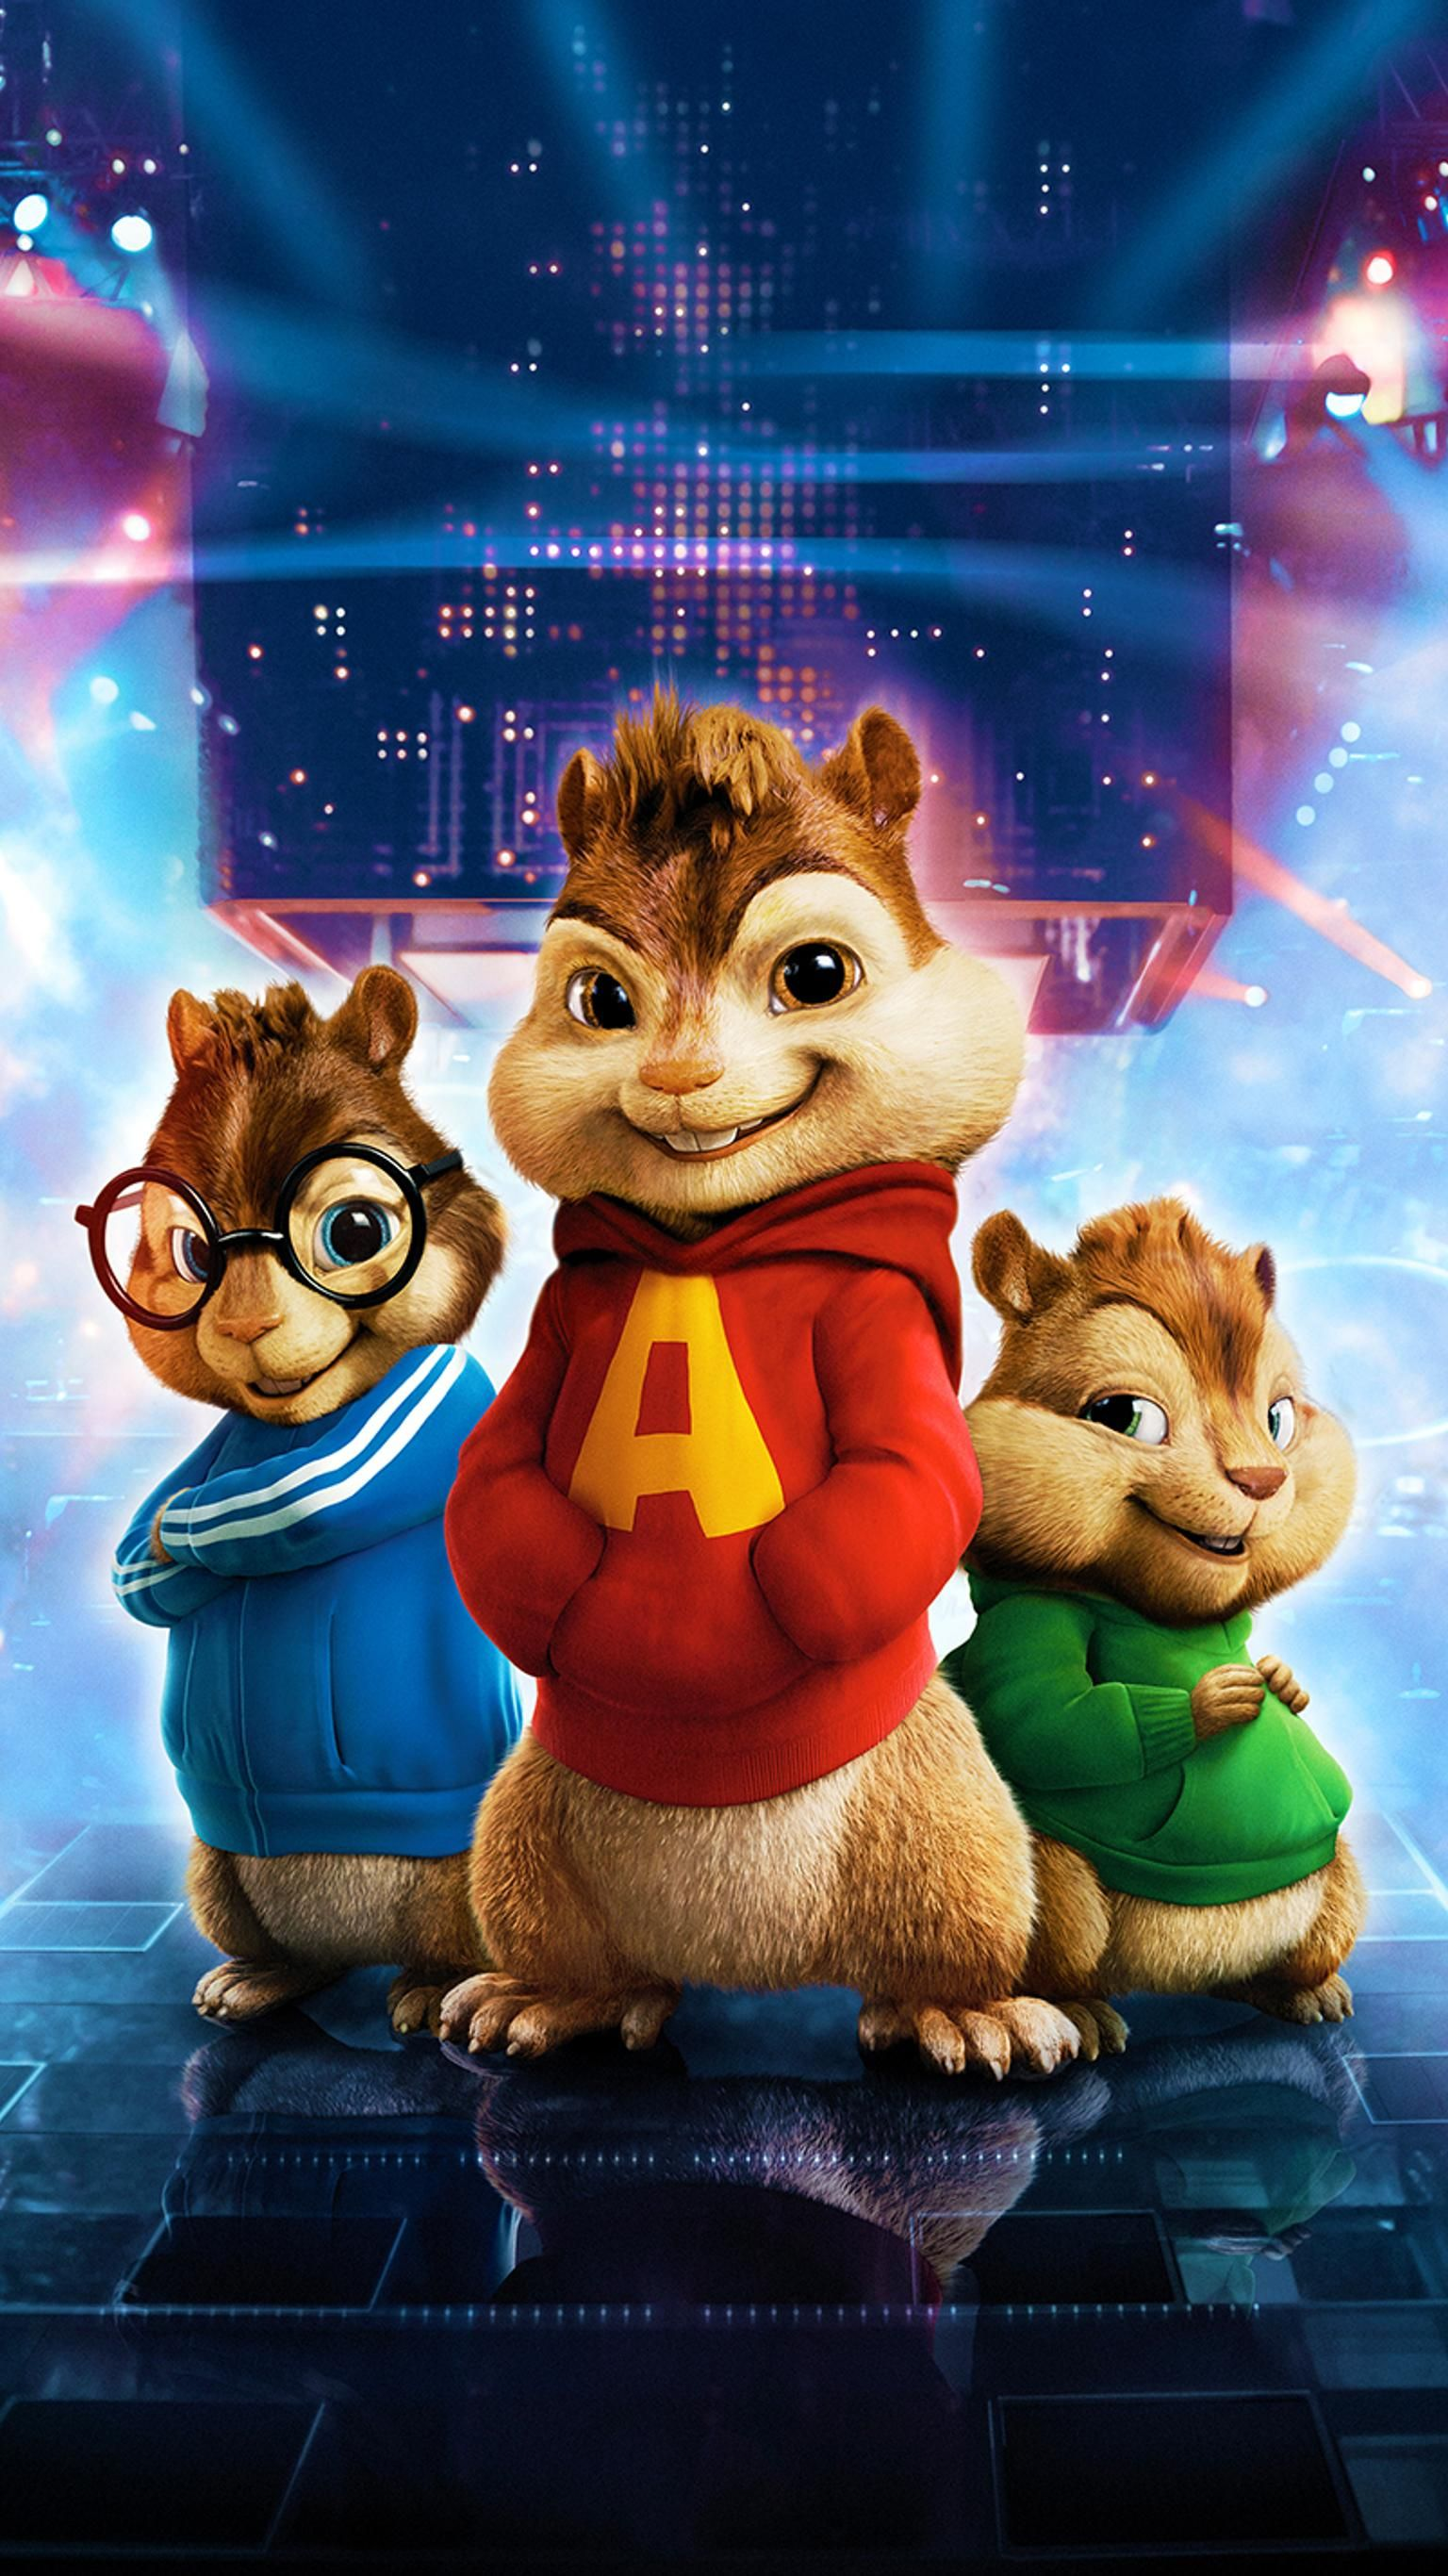 Alvin And The Chipmunks 2007 Phone Wallpaper Alvin And